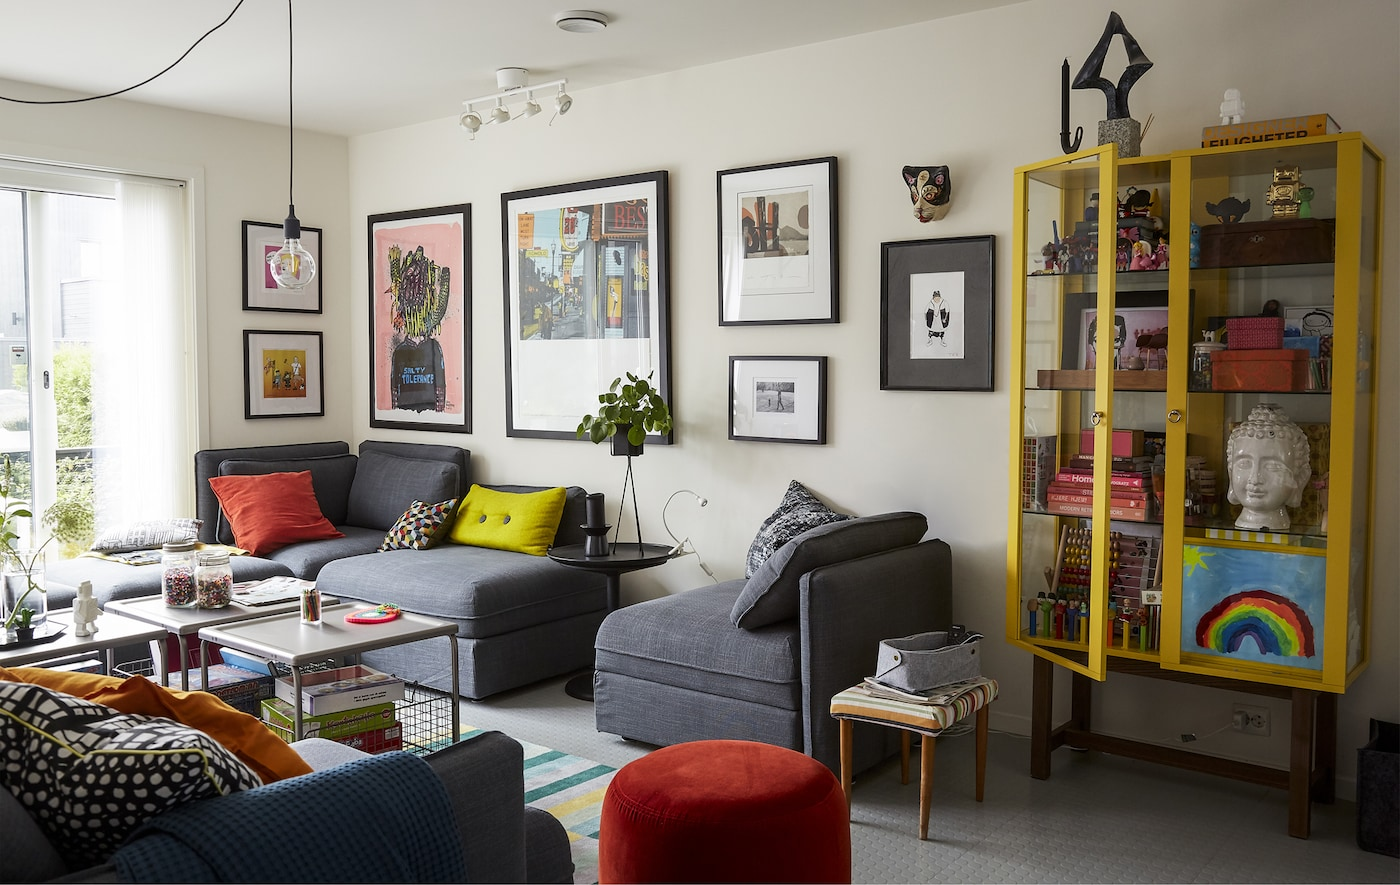 A living room with grey modular sofa and colourful cushions.